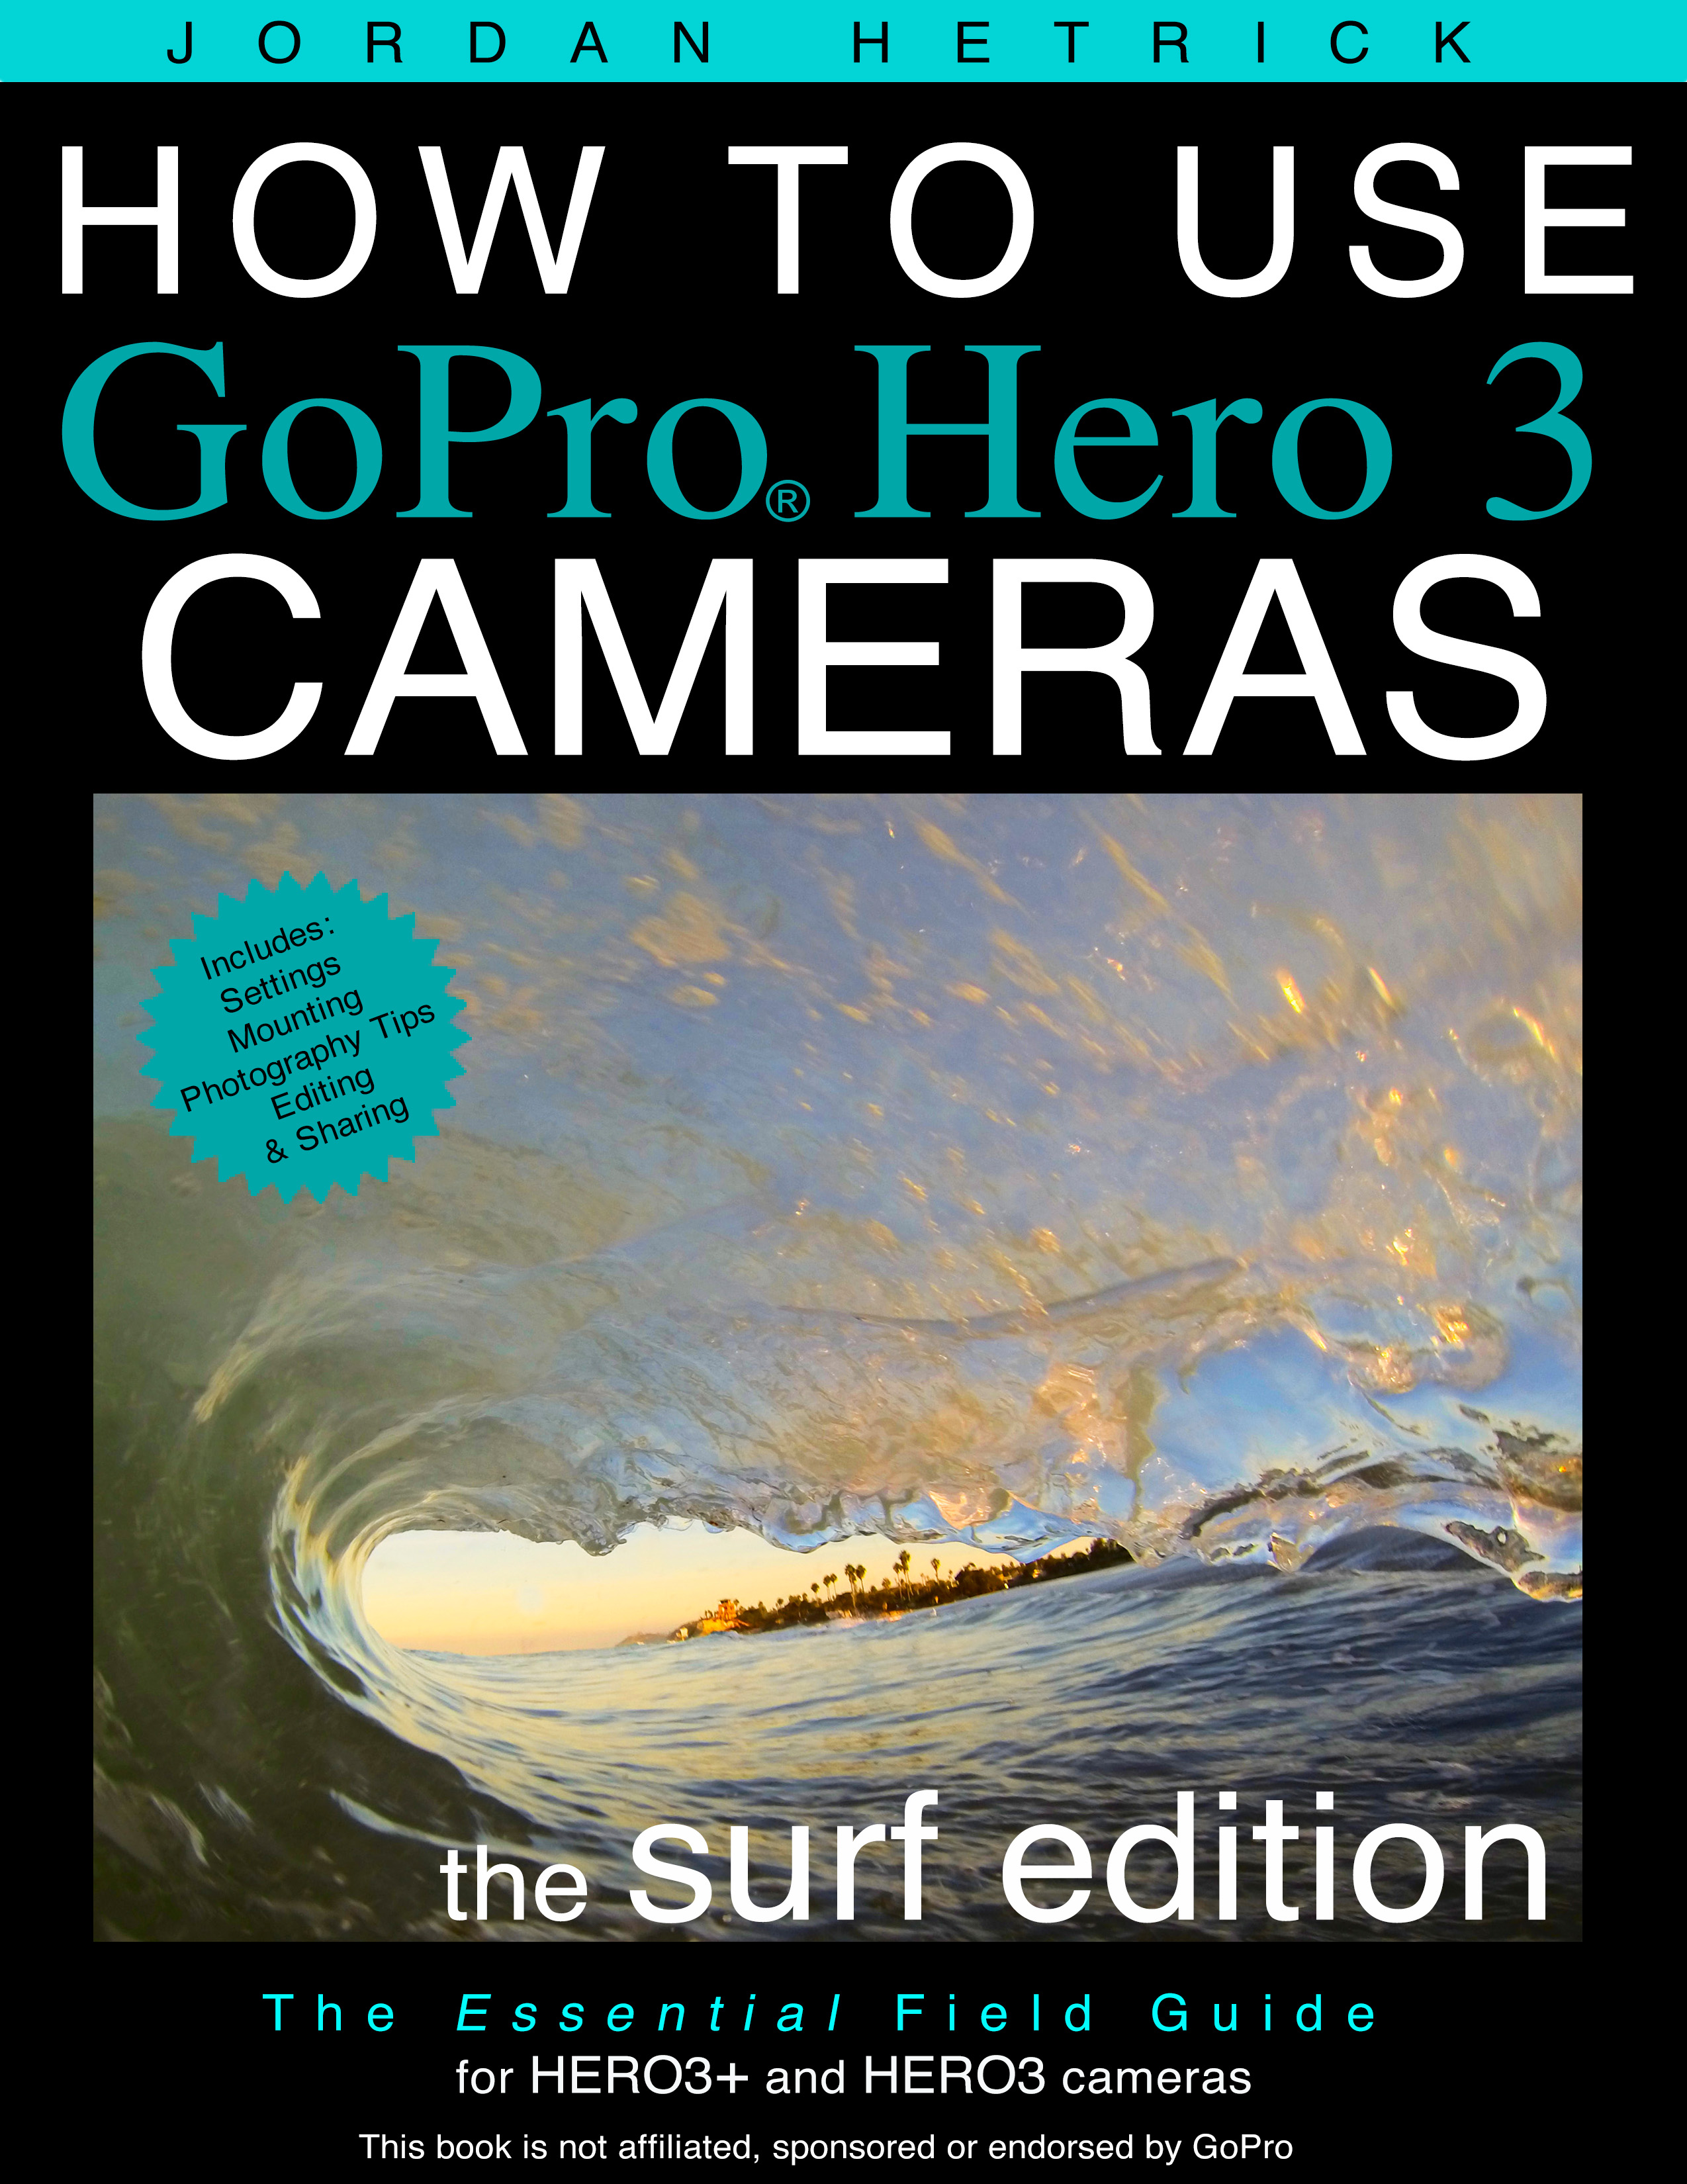 Jordan Hetrick - How To Use GoPro Hero 3 Cameras: The Surf Edition for HERO 3+ and HERO 3 Cameras